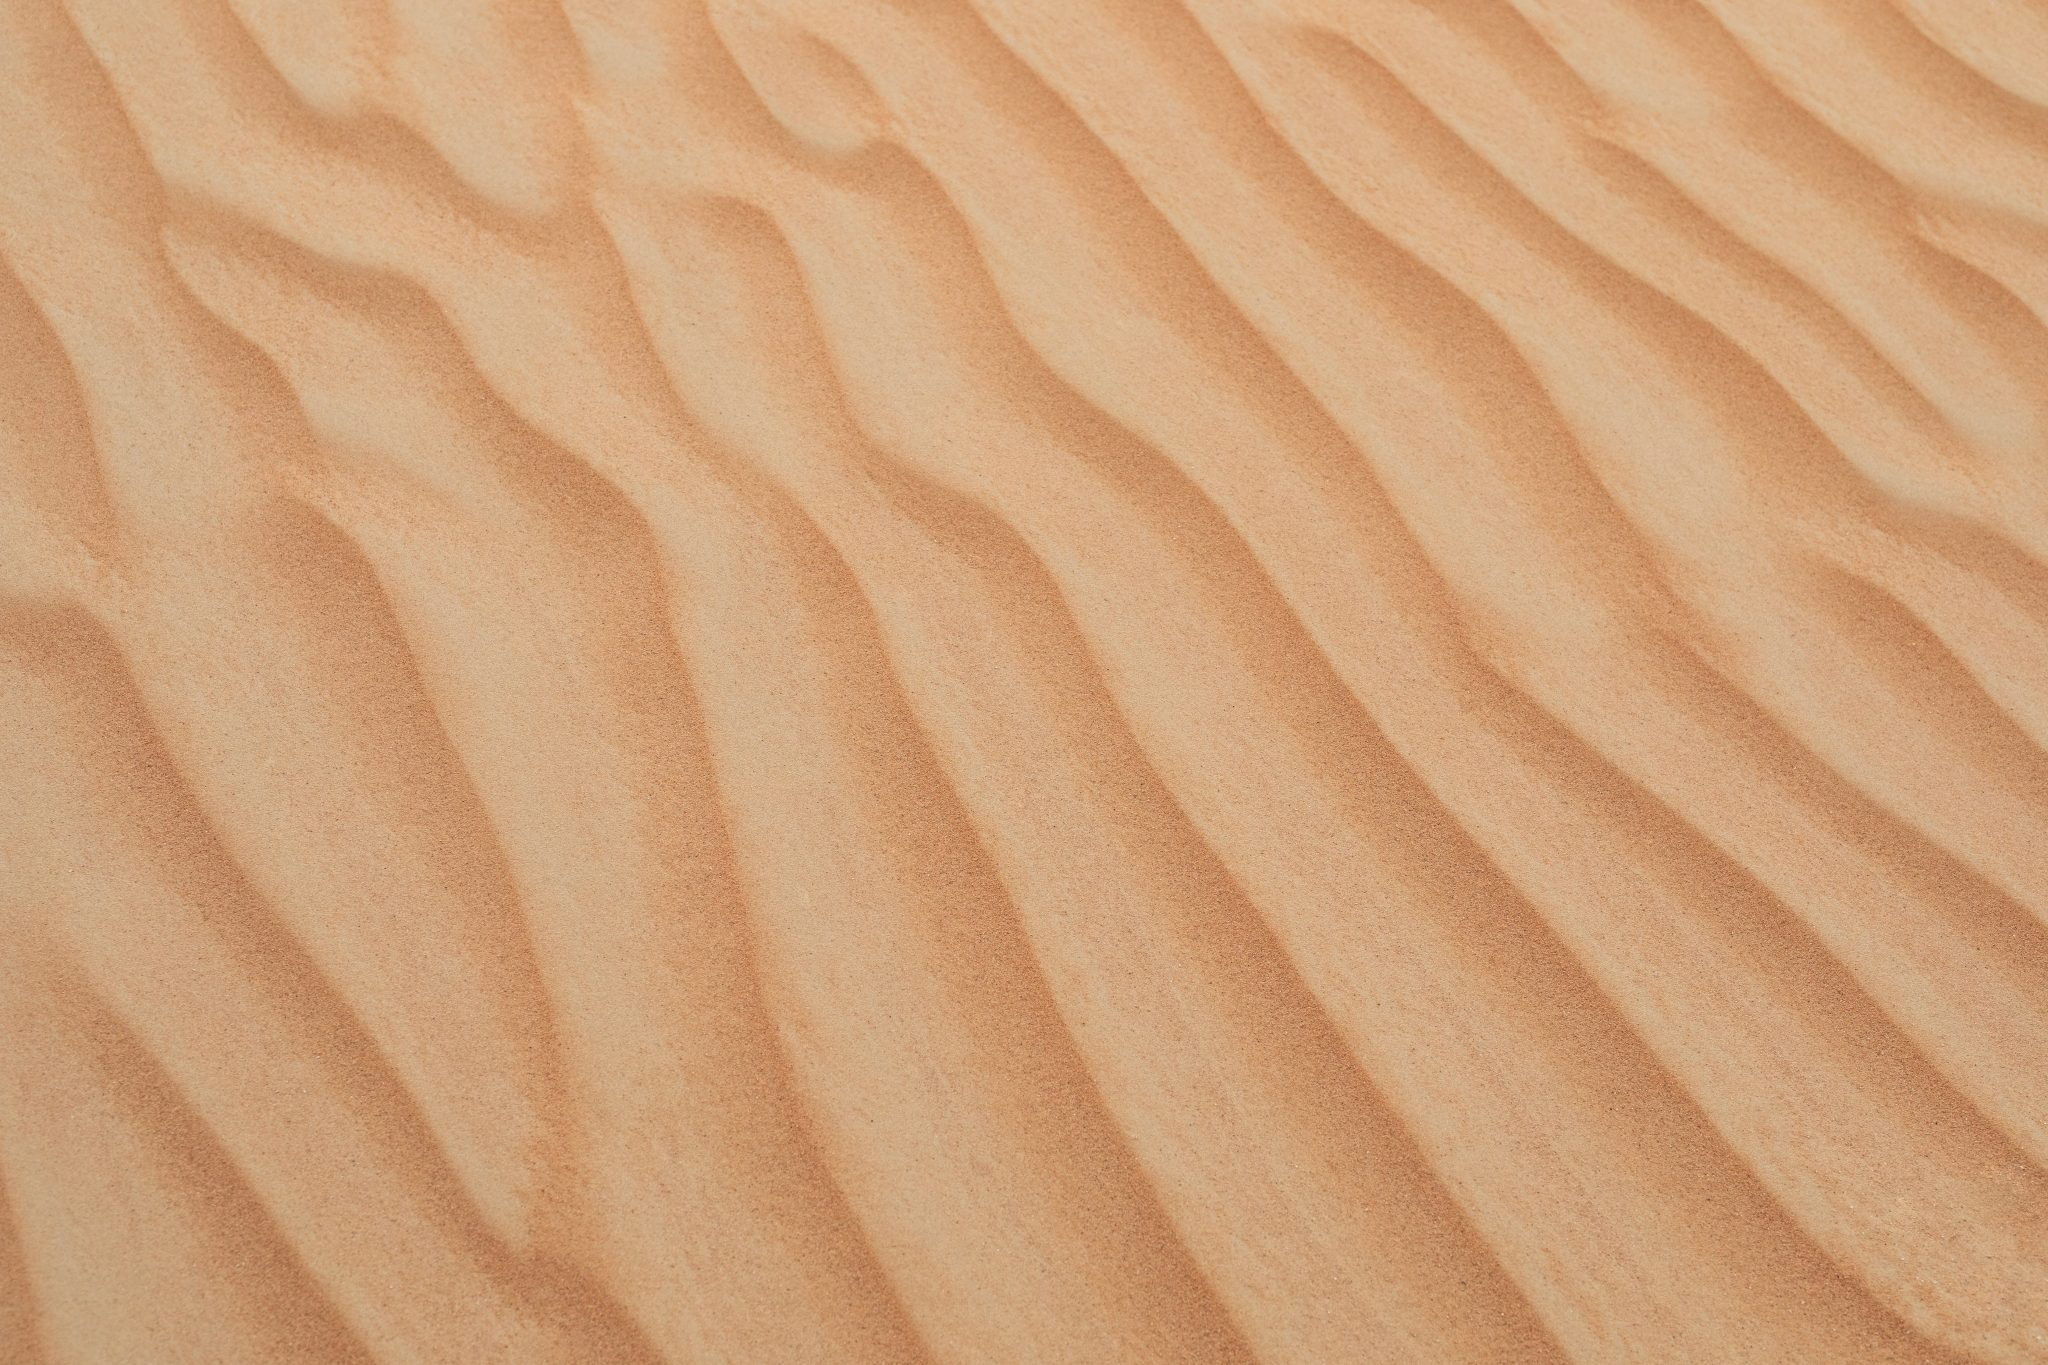 Lines in the Sand: Defining the Boundary Between Rules and Code